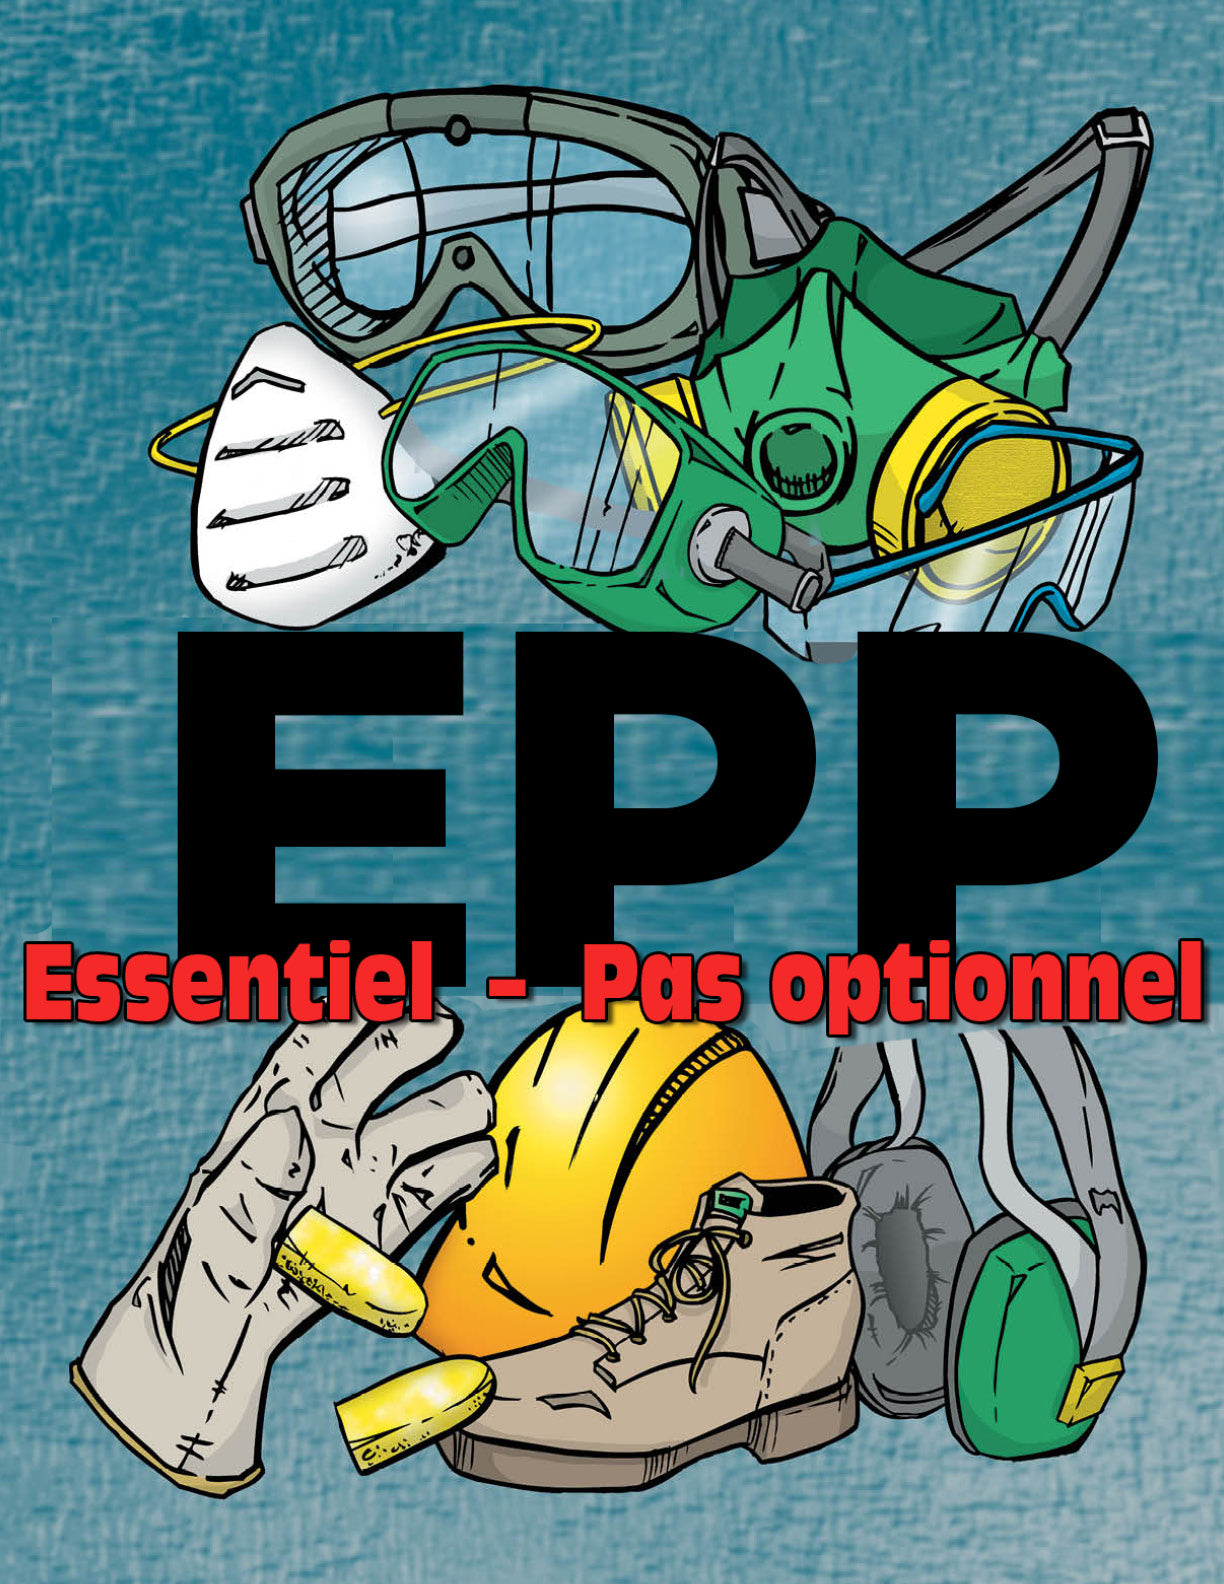 PPE Essential Not Optional - French Safety Poster